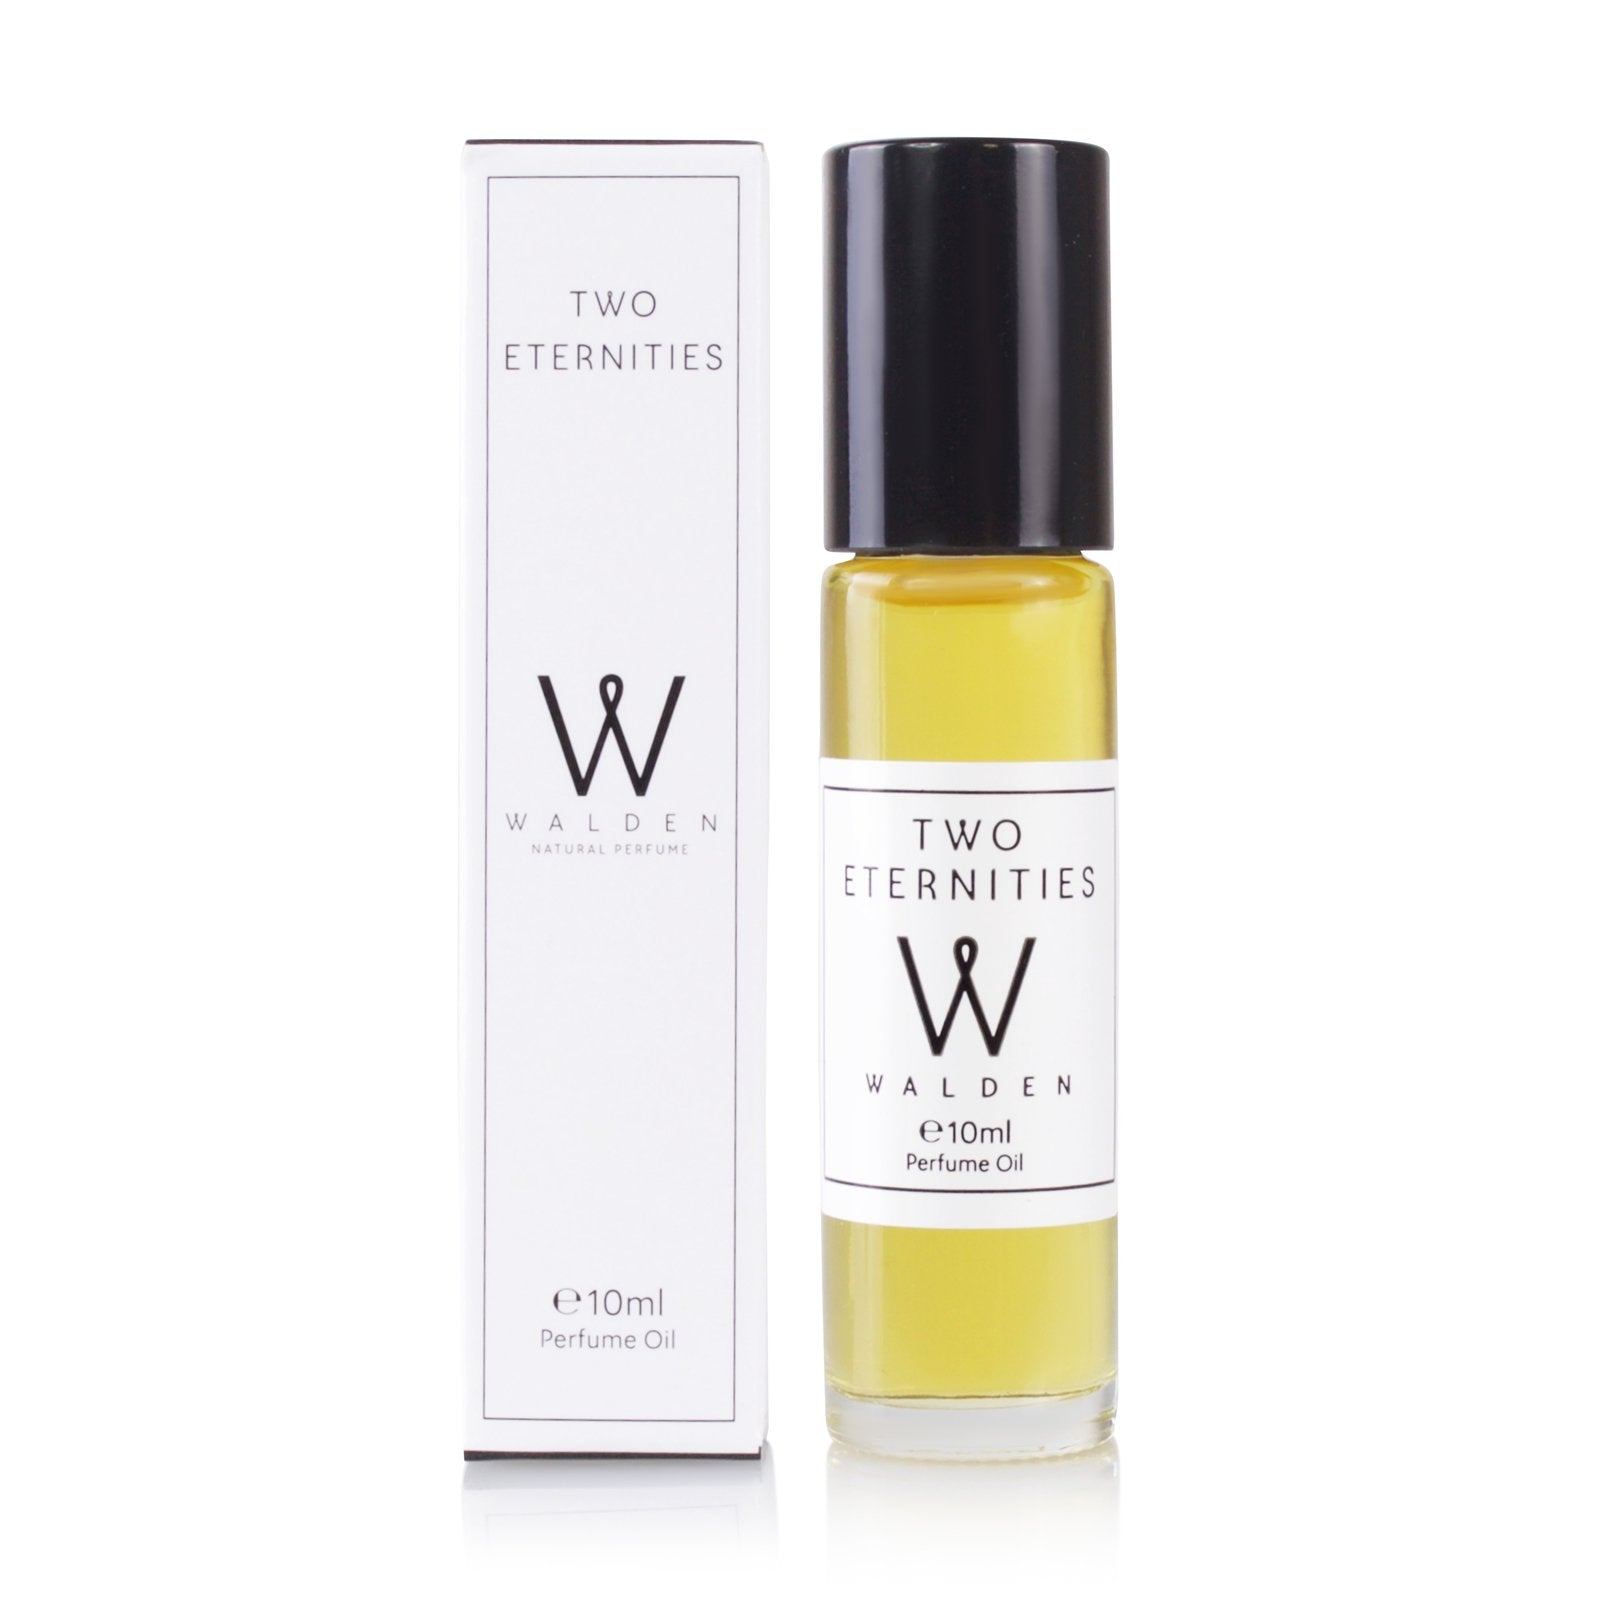 Perfume Oil Two Eternities | Beauty | Walden Perfumes | [product_tag] - Fair Bazaar Ethical Living